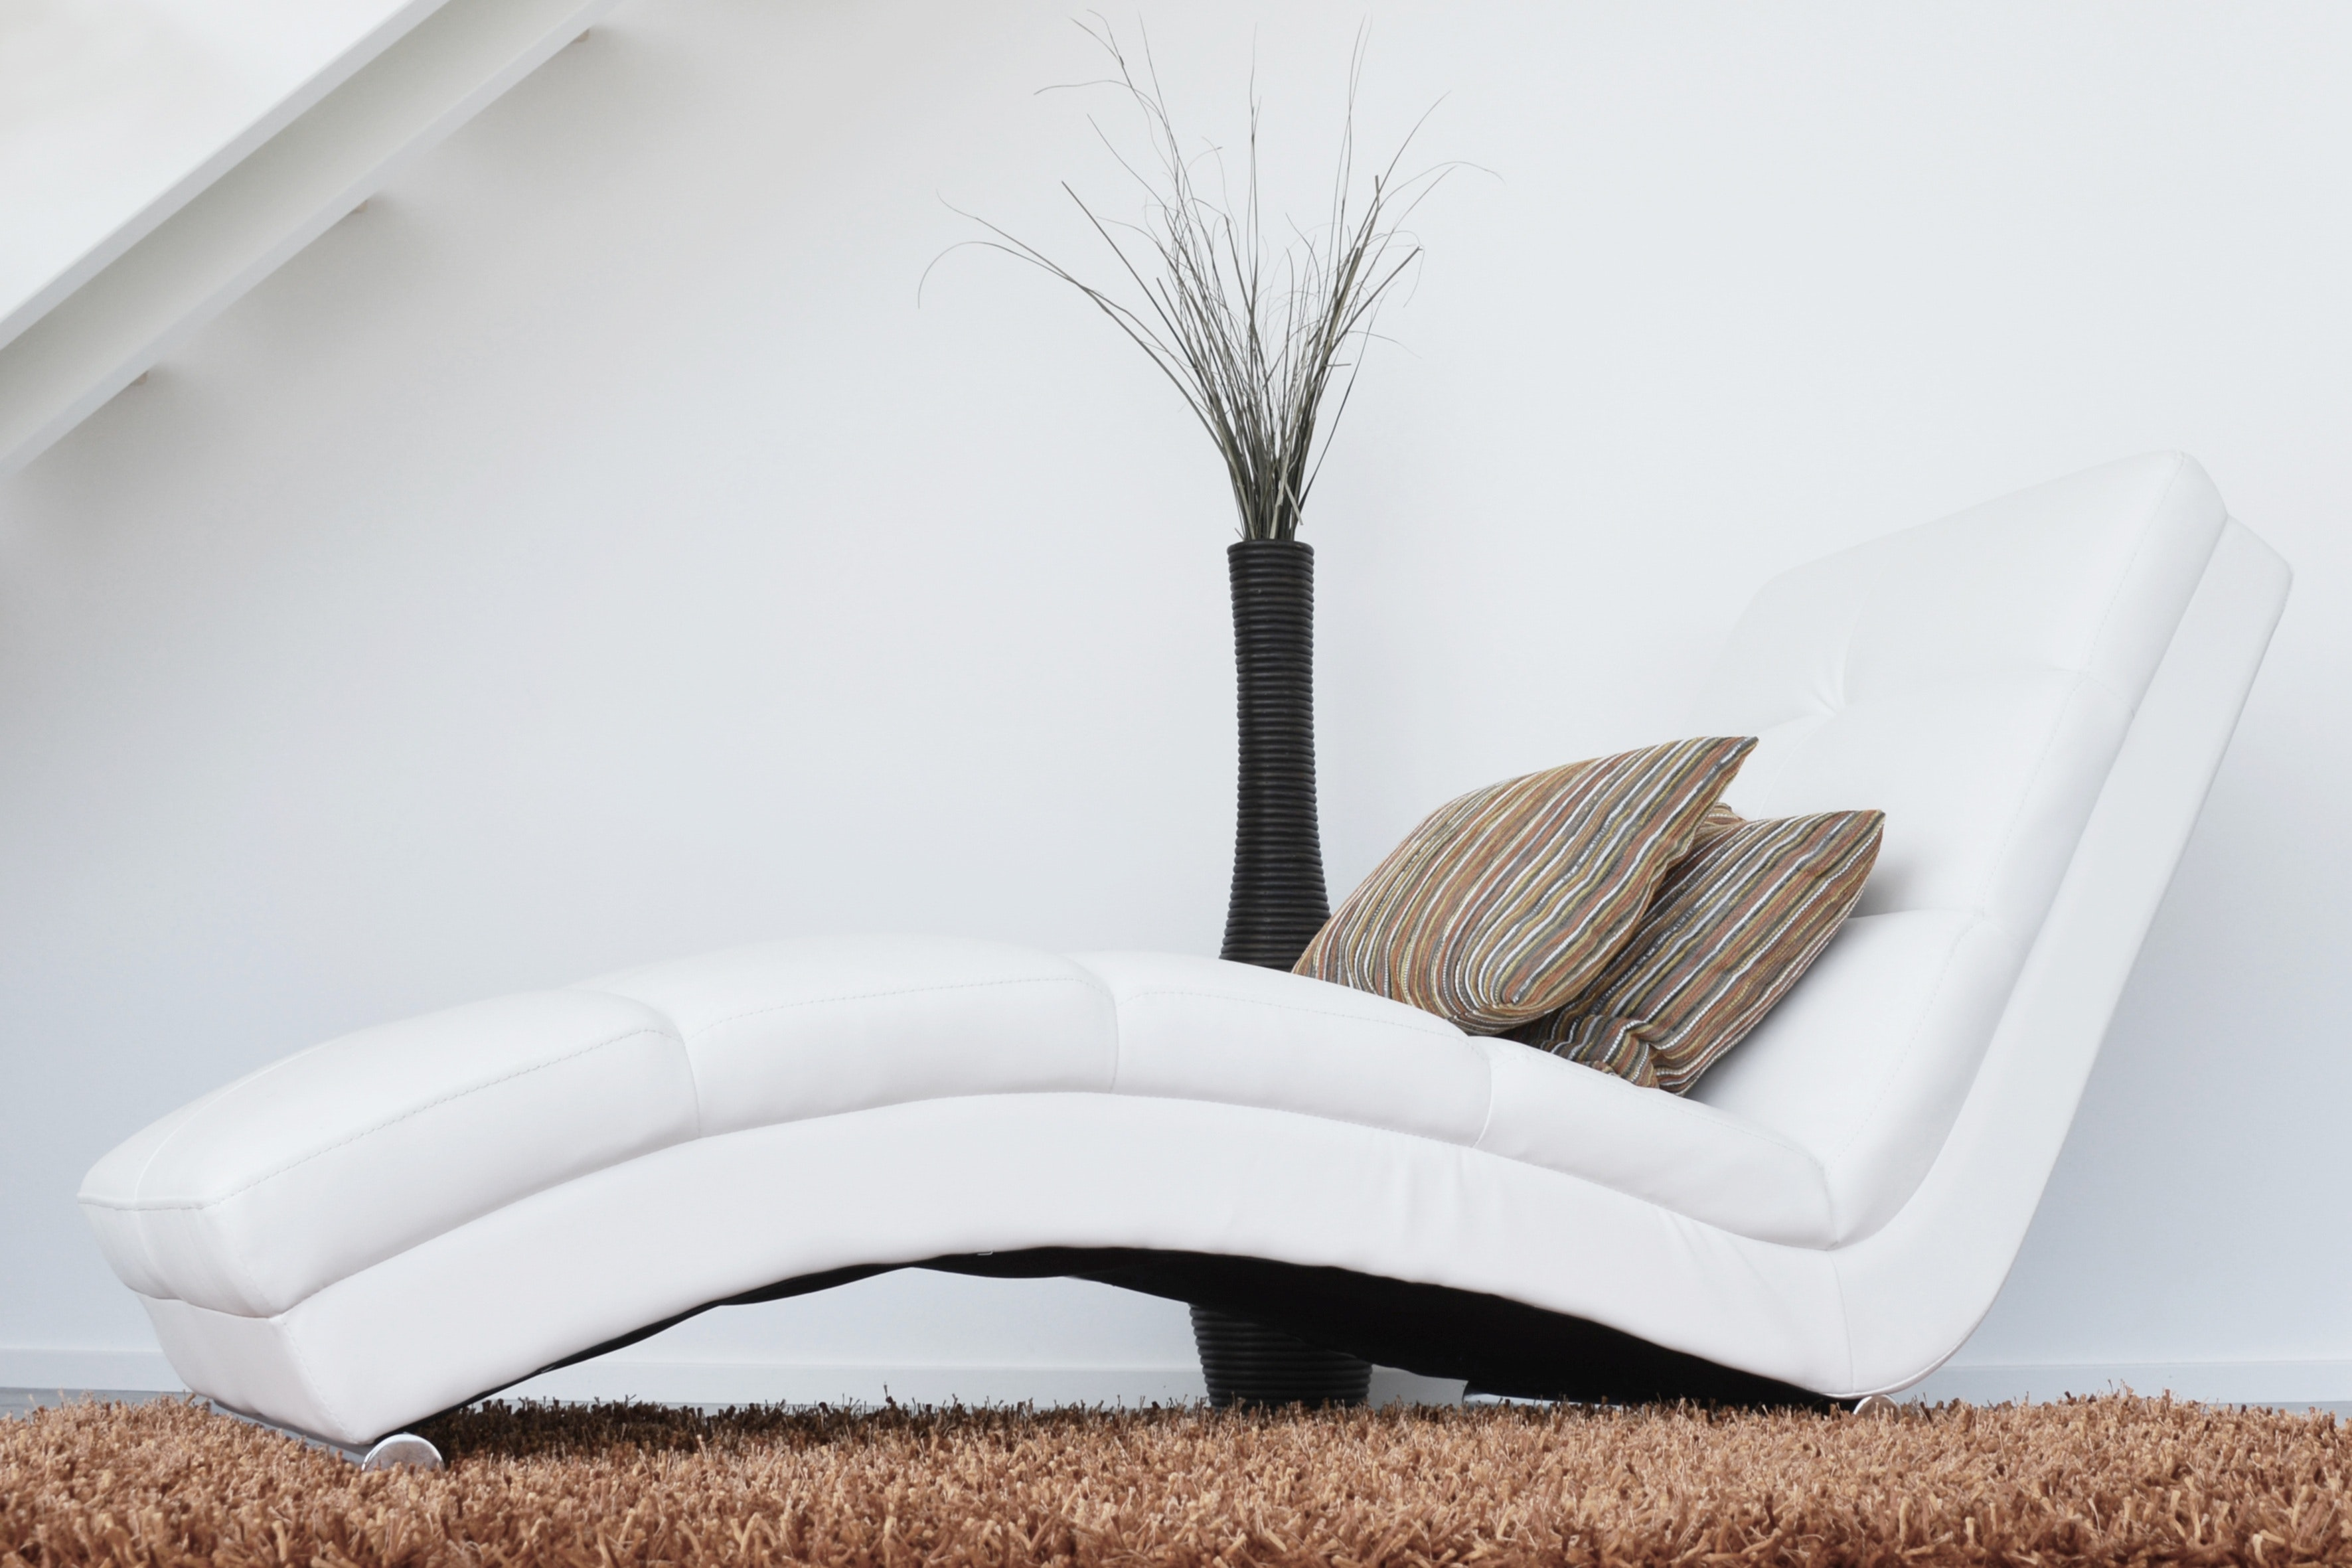 Two Pillows On White Leather Fainting Couch Free Stock Photo